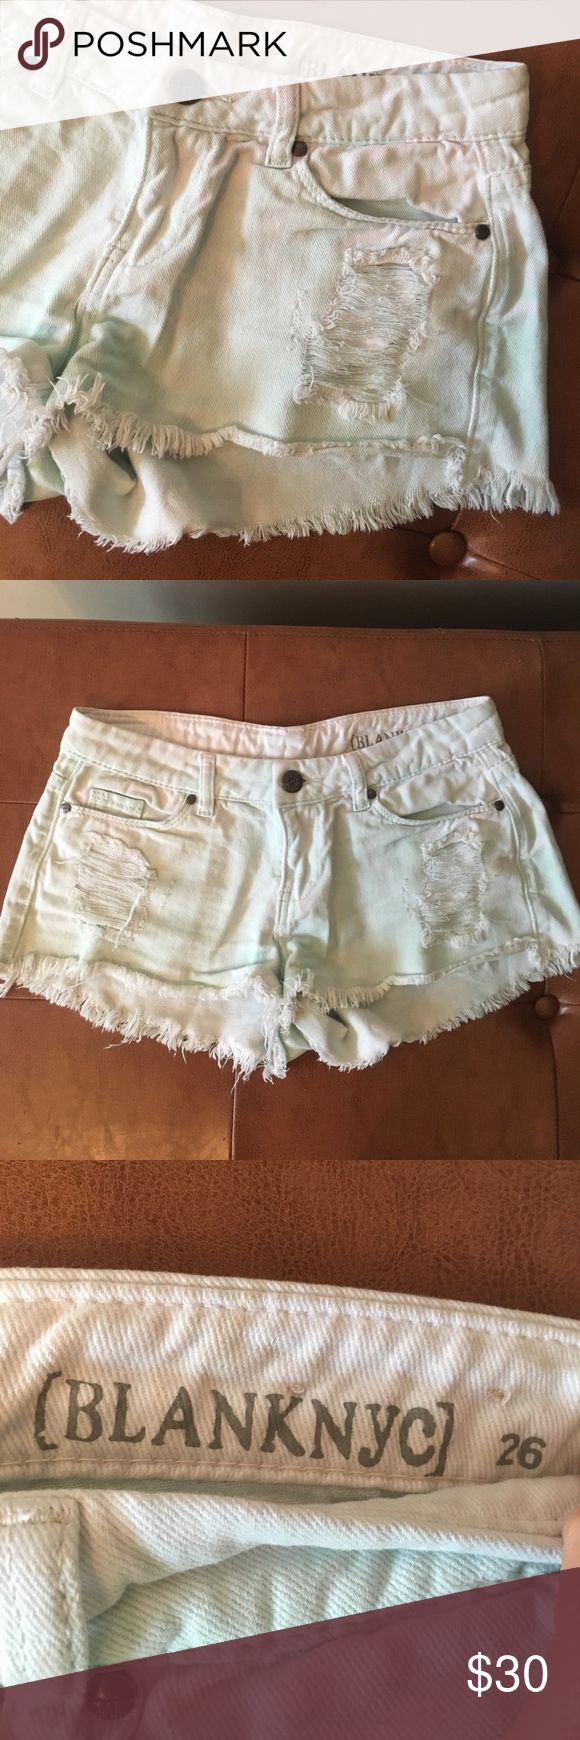 BLANK Denim Shorts BLANK size 26 good condition Denim shorts. Mostly white with a light green / tealish wash to them. Blank NYC Shorts Jean Shorts